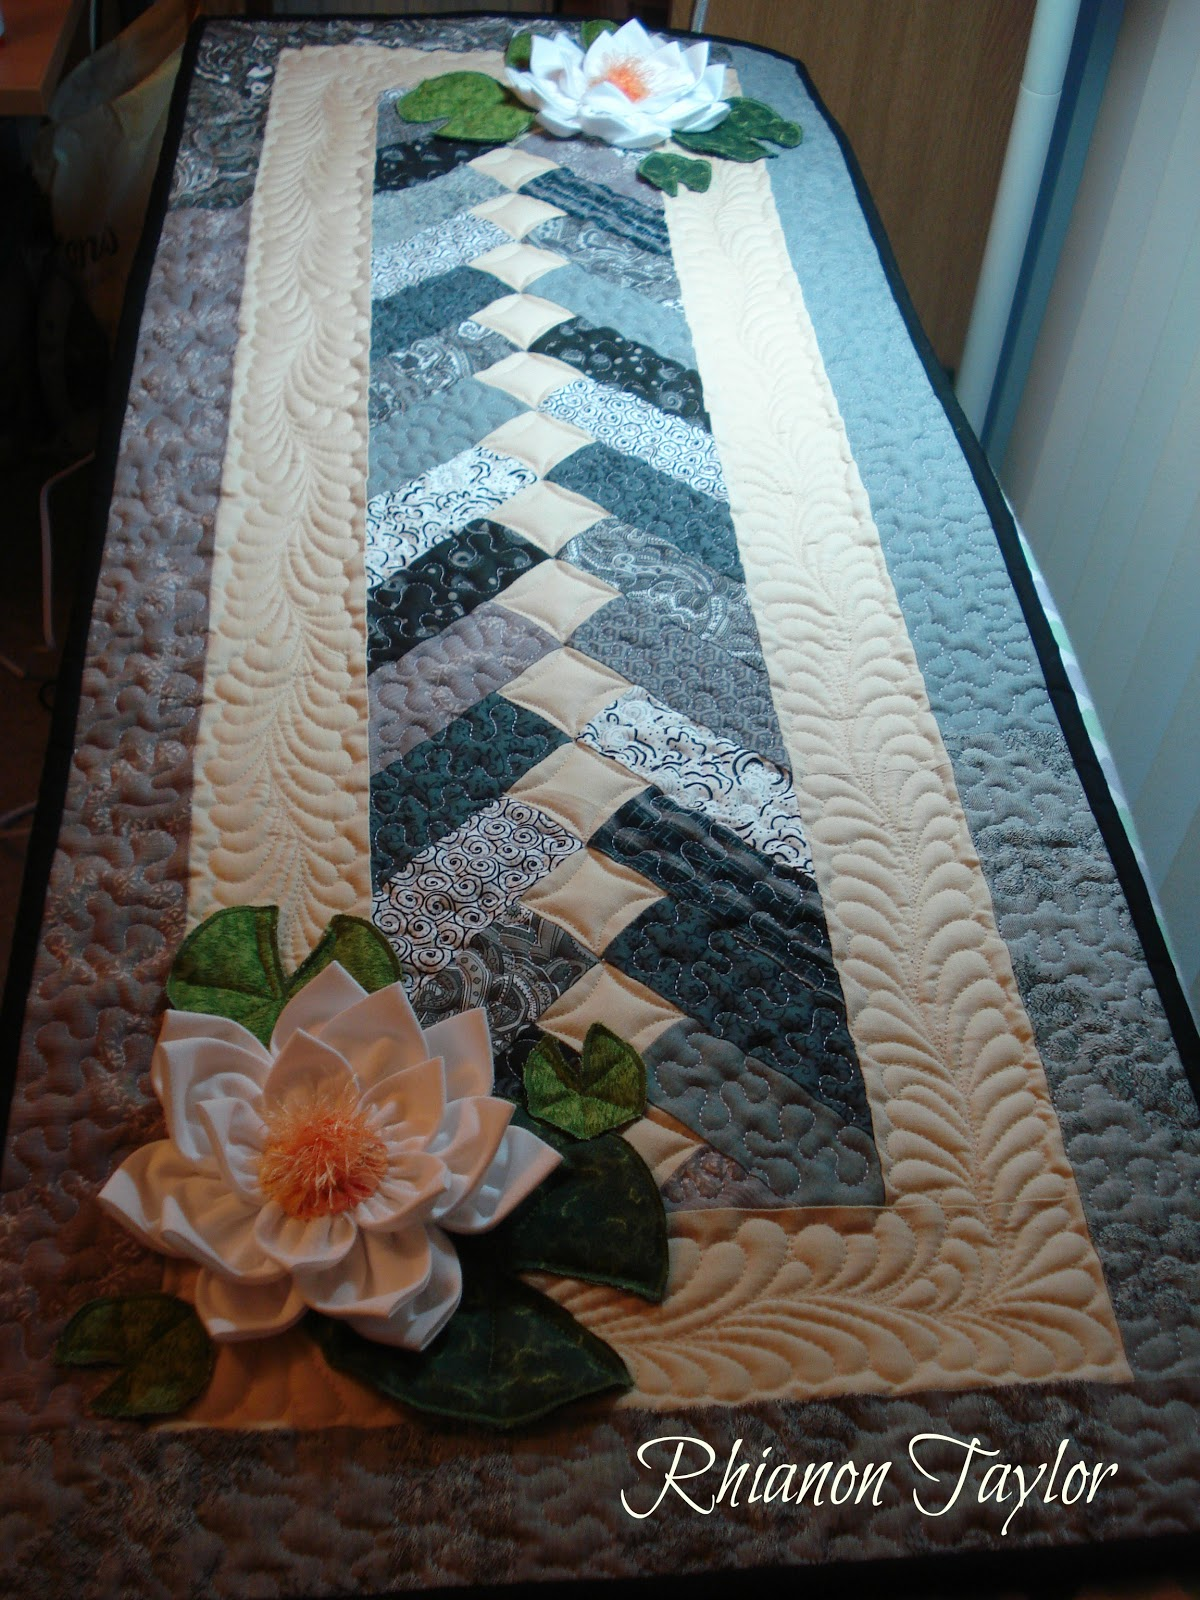 The Nifty Stitcher Table Runner With Water Lilies